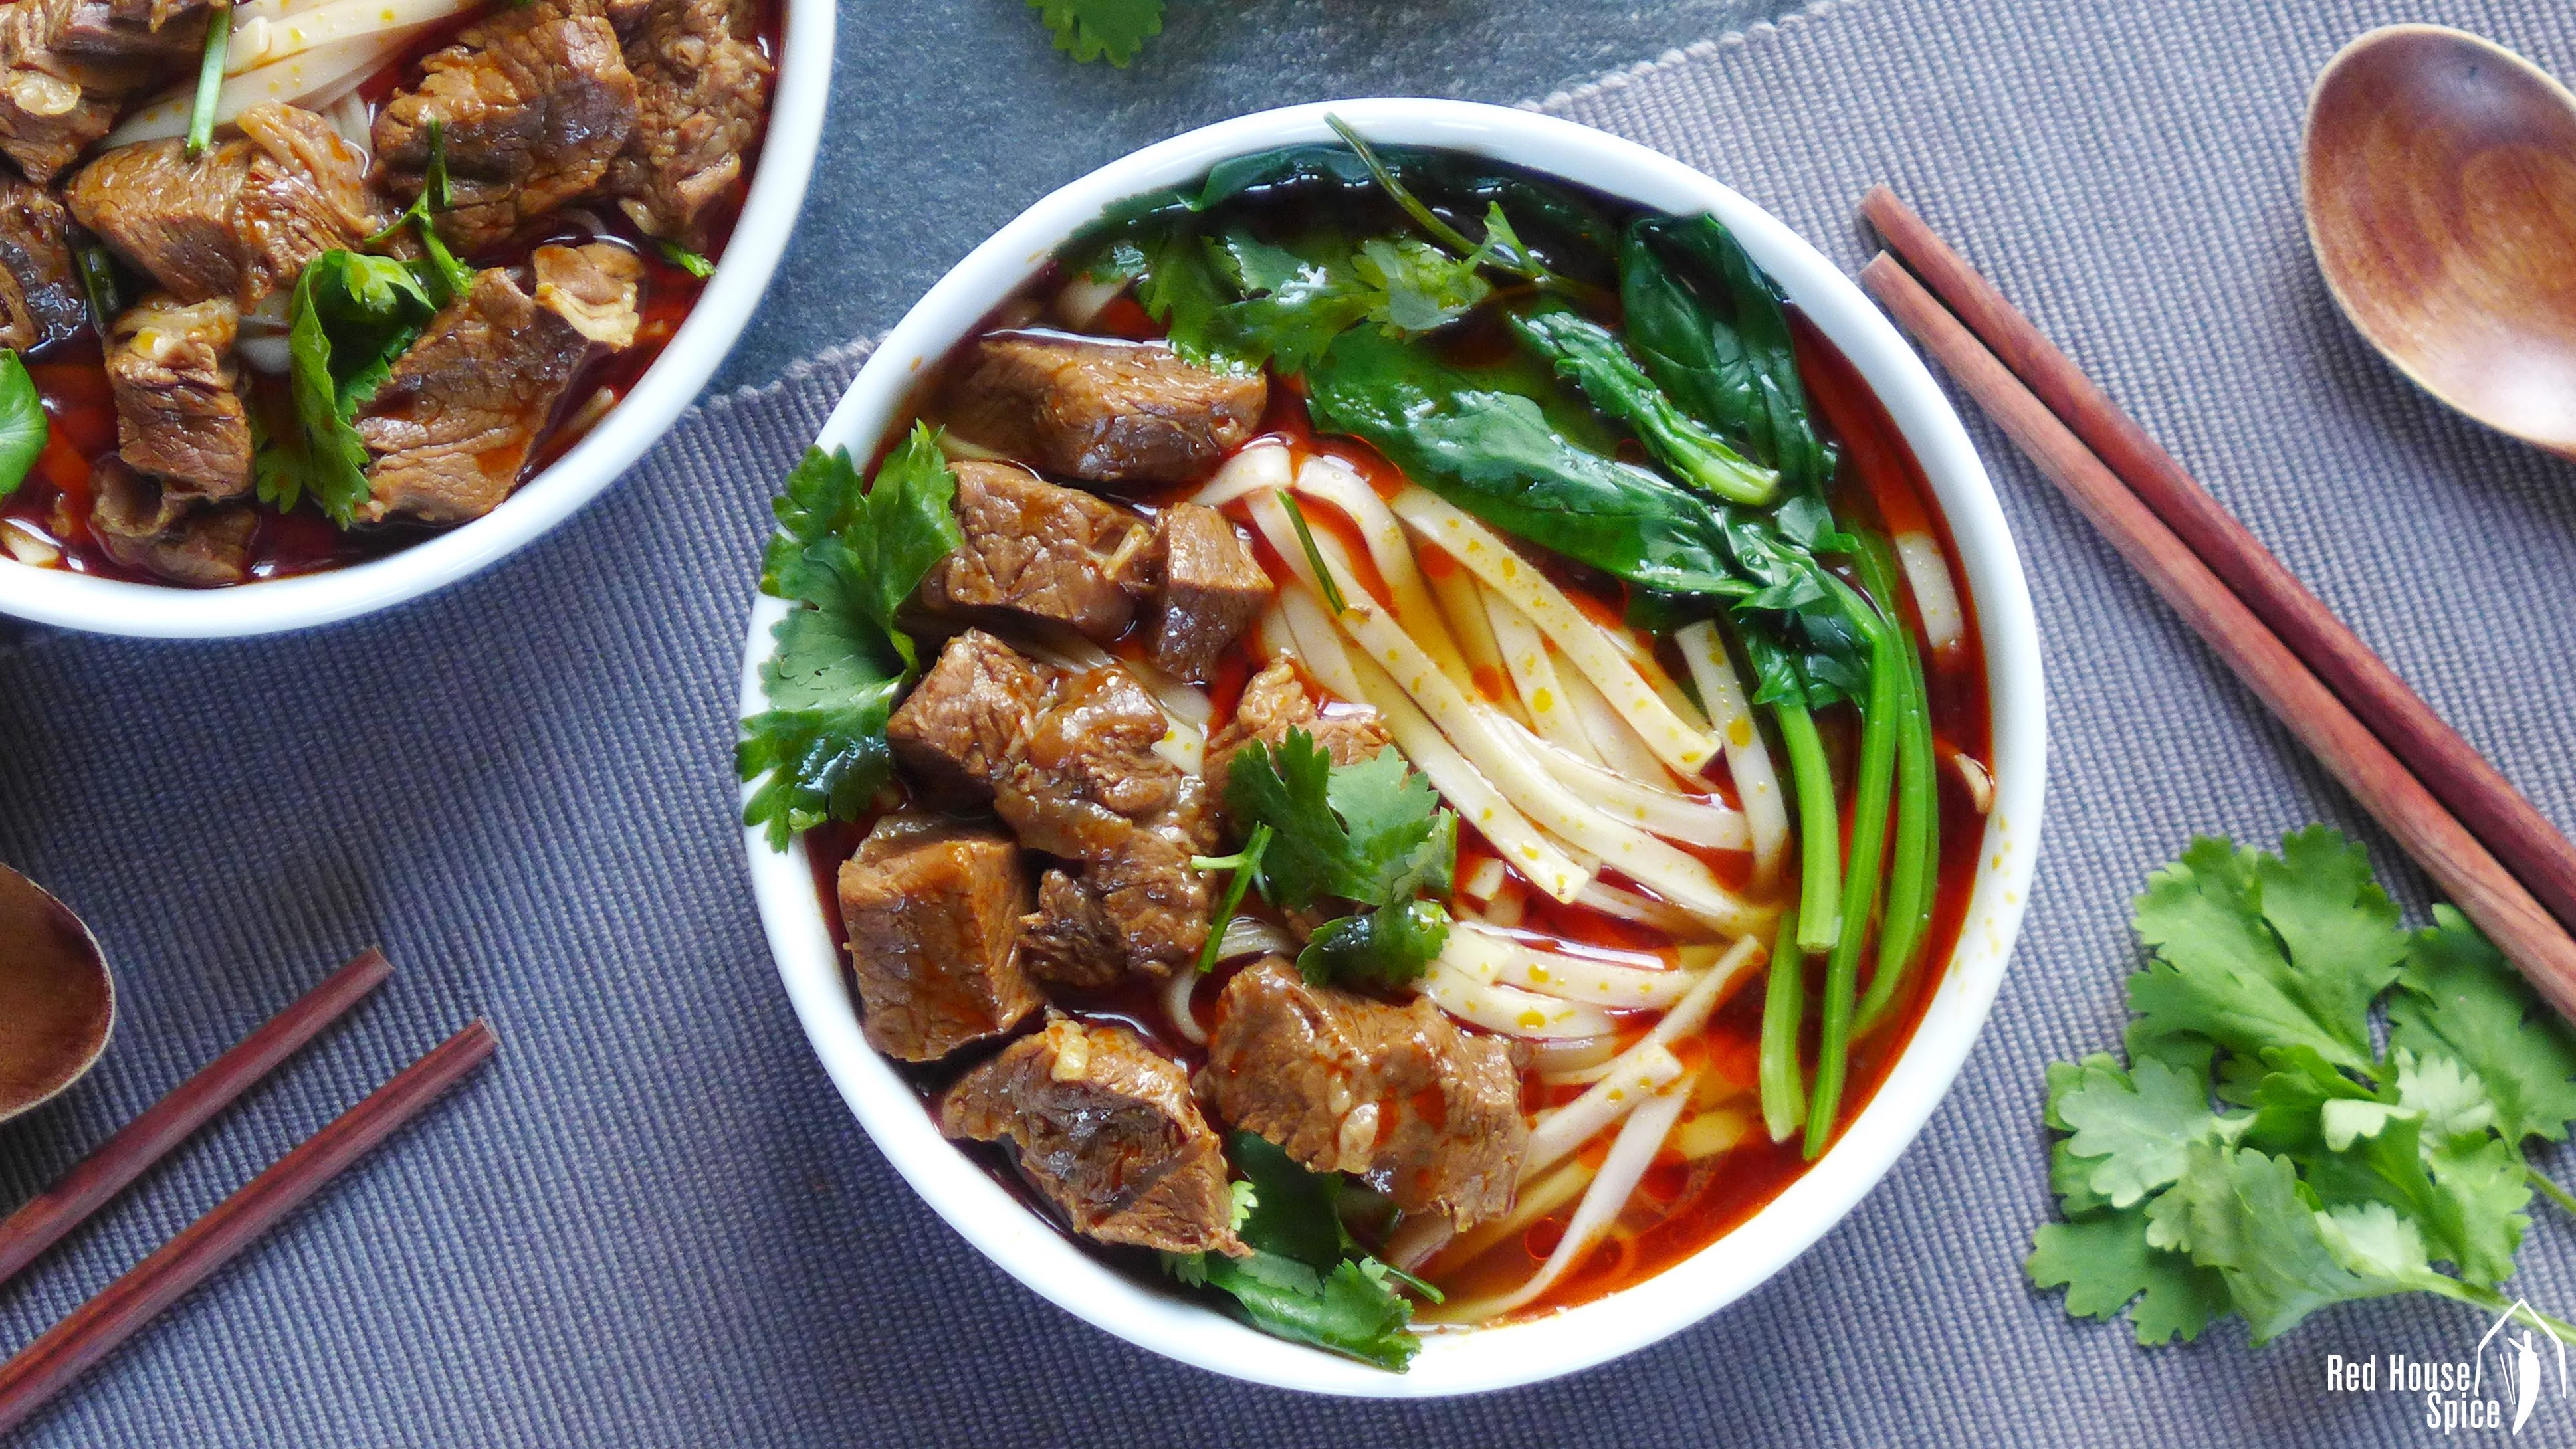 Beef Noodle Soup  Spicy beef noodle soup 香辣牛肉面 – Red House Spice